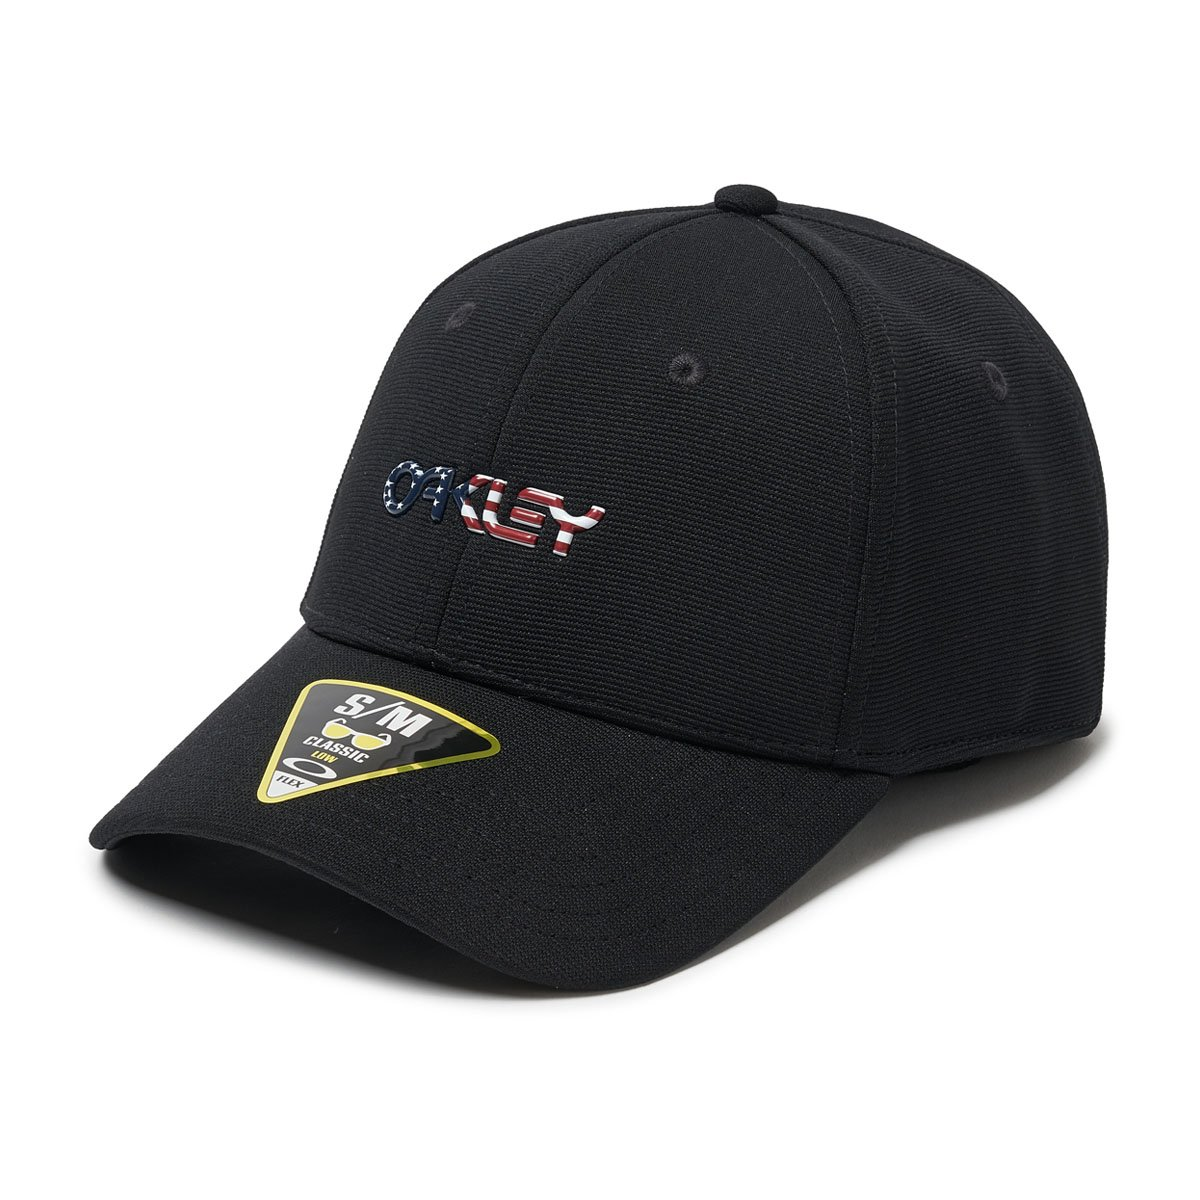 6 PANEL HAT Oakley Metallic